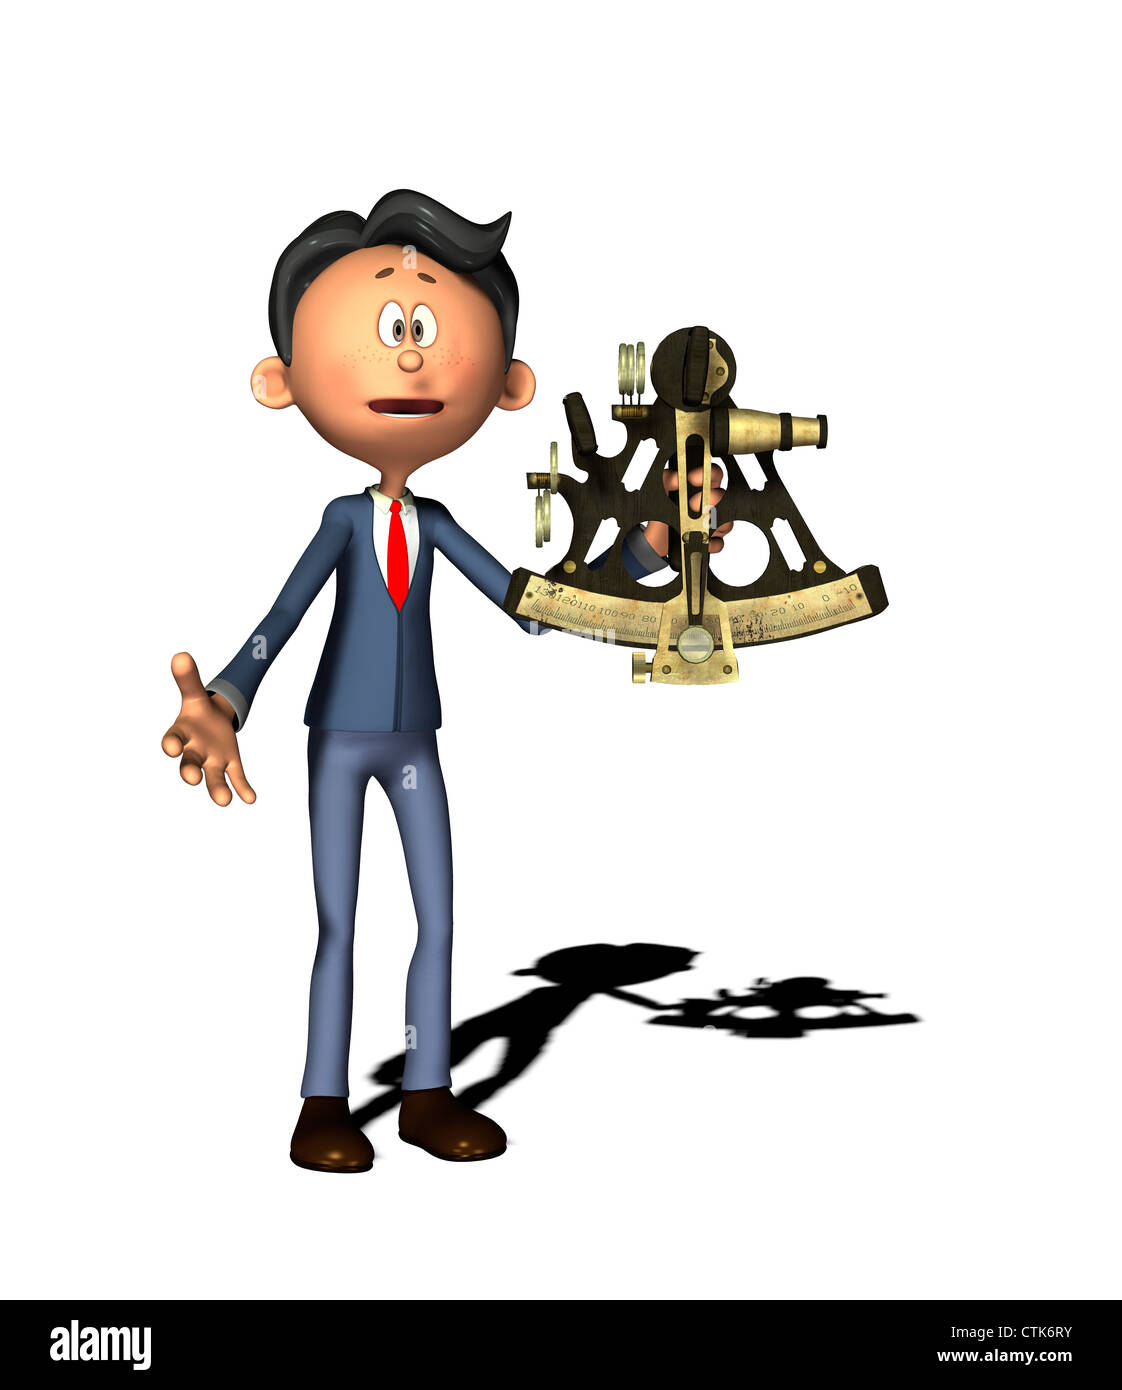 cartoon figure physics teacher with sextant - Stock Image